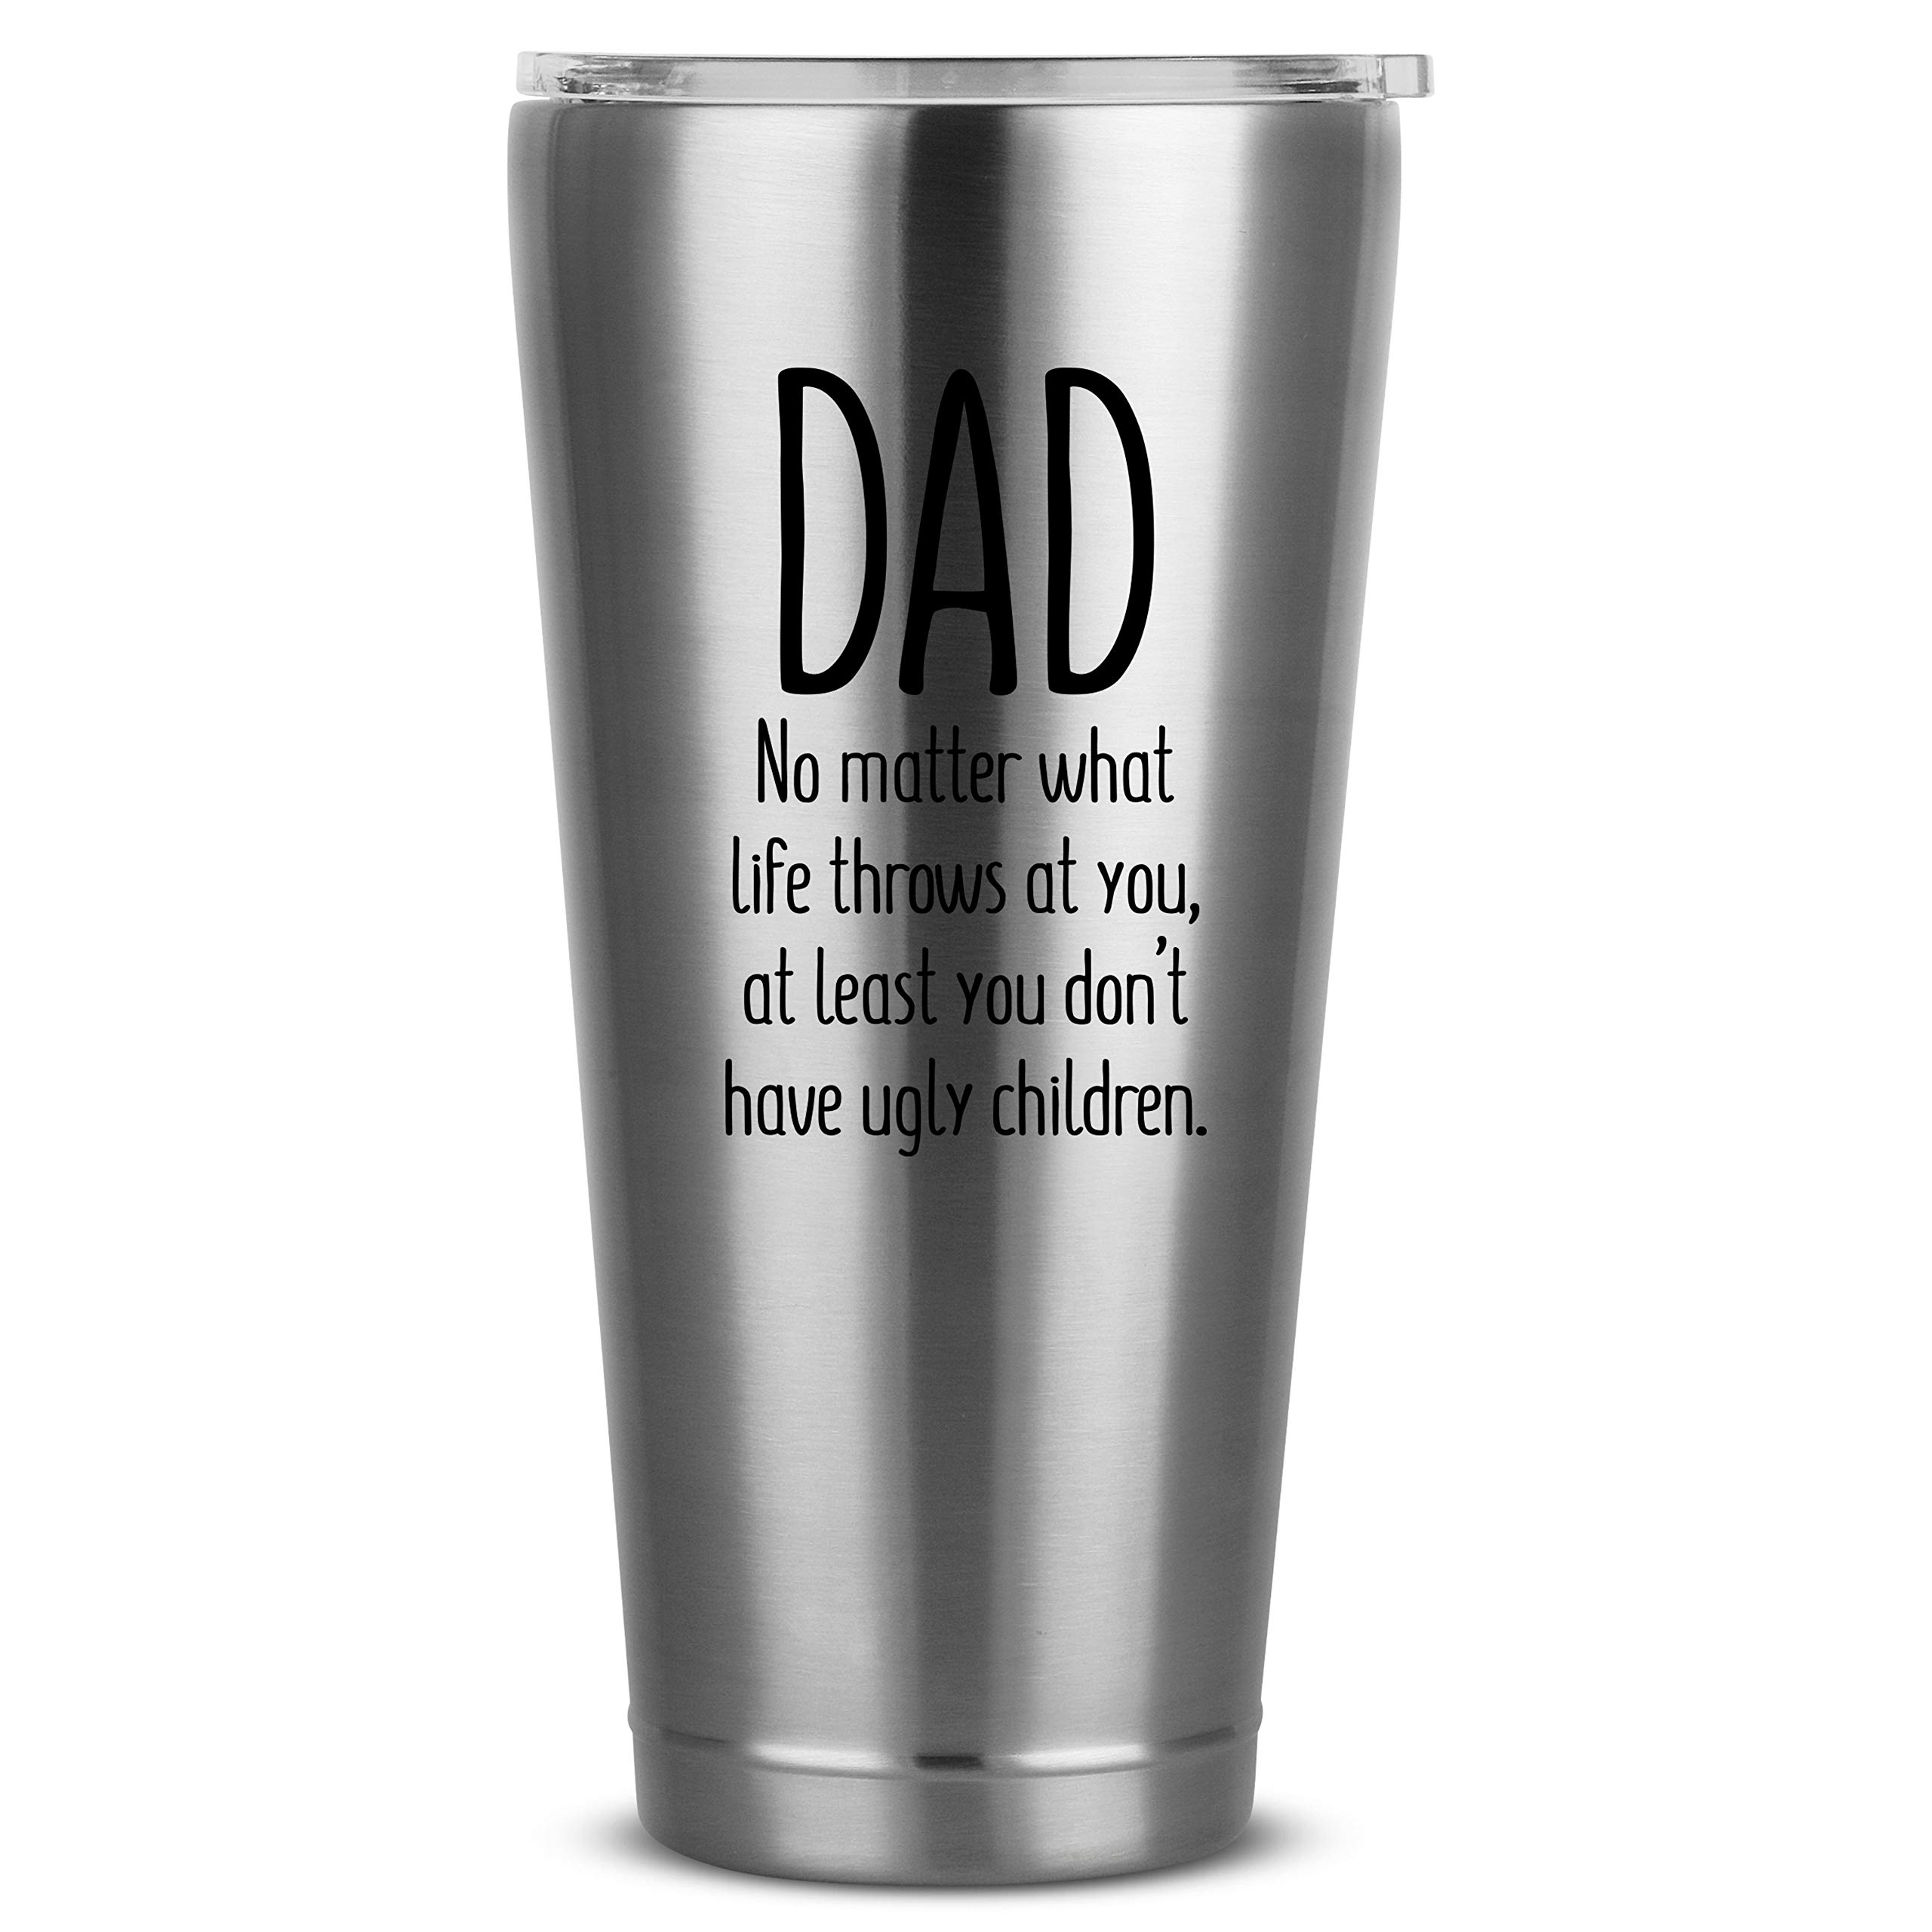 Personalized Etched Insulated 30oz Stainless Steel Tumbler  Gifts for Him   Father/'s Day Gifts  Gifts for Her  Birthday Gifts Jones